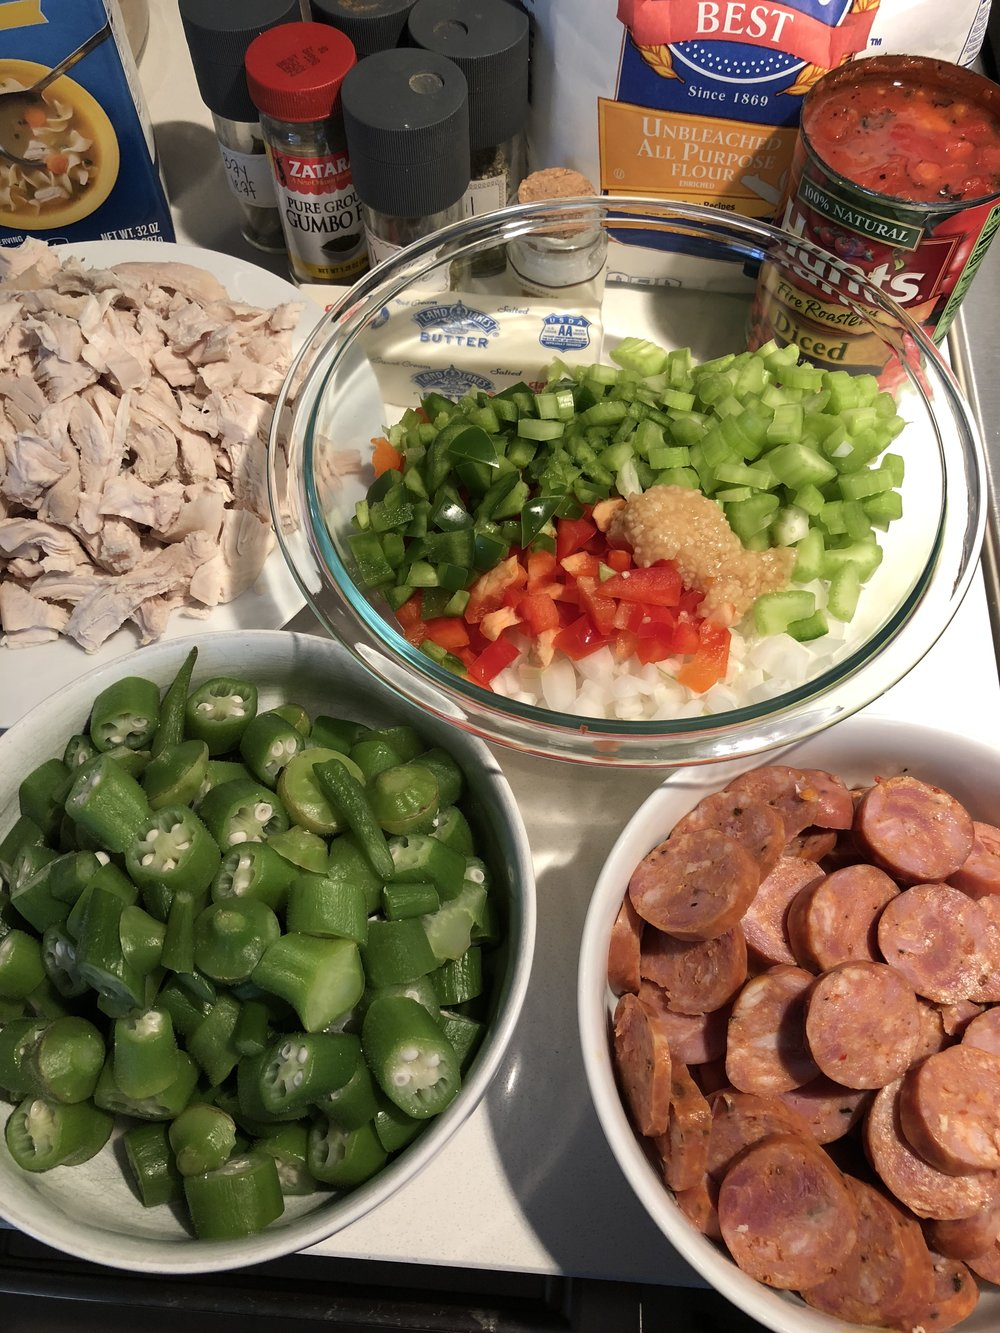 Allow about an hour to prep all the gumbo ingredients